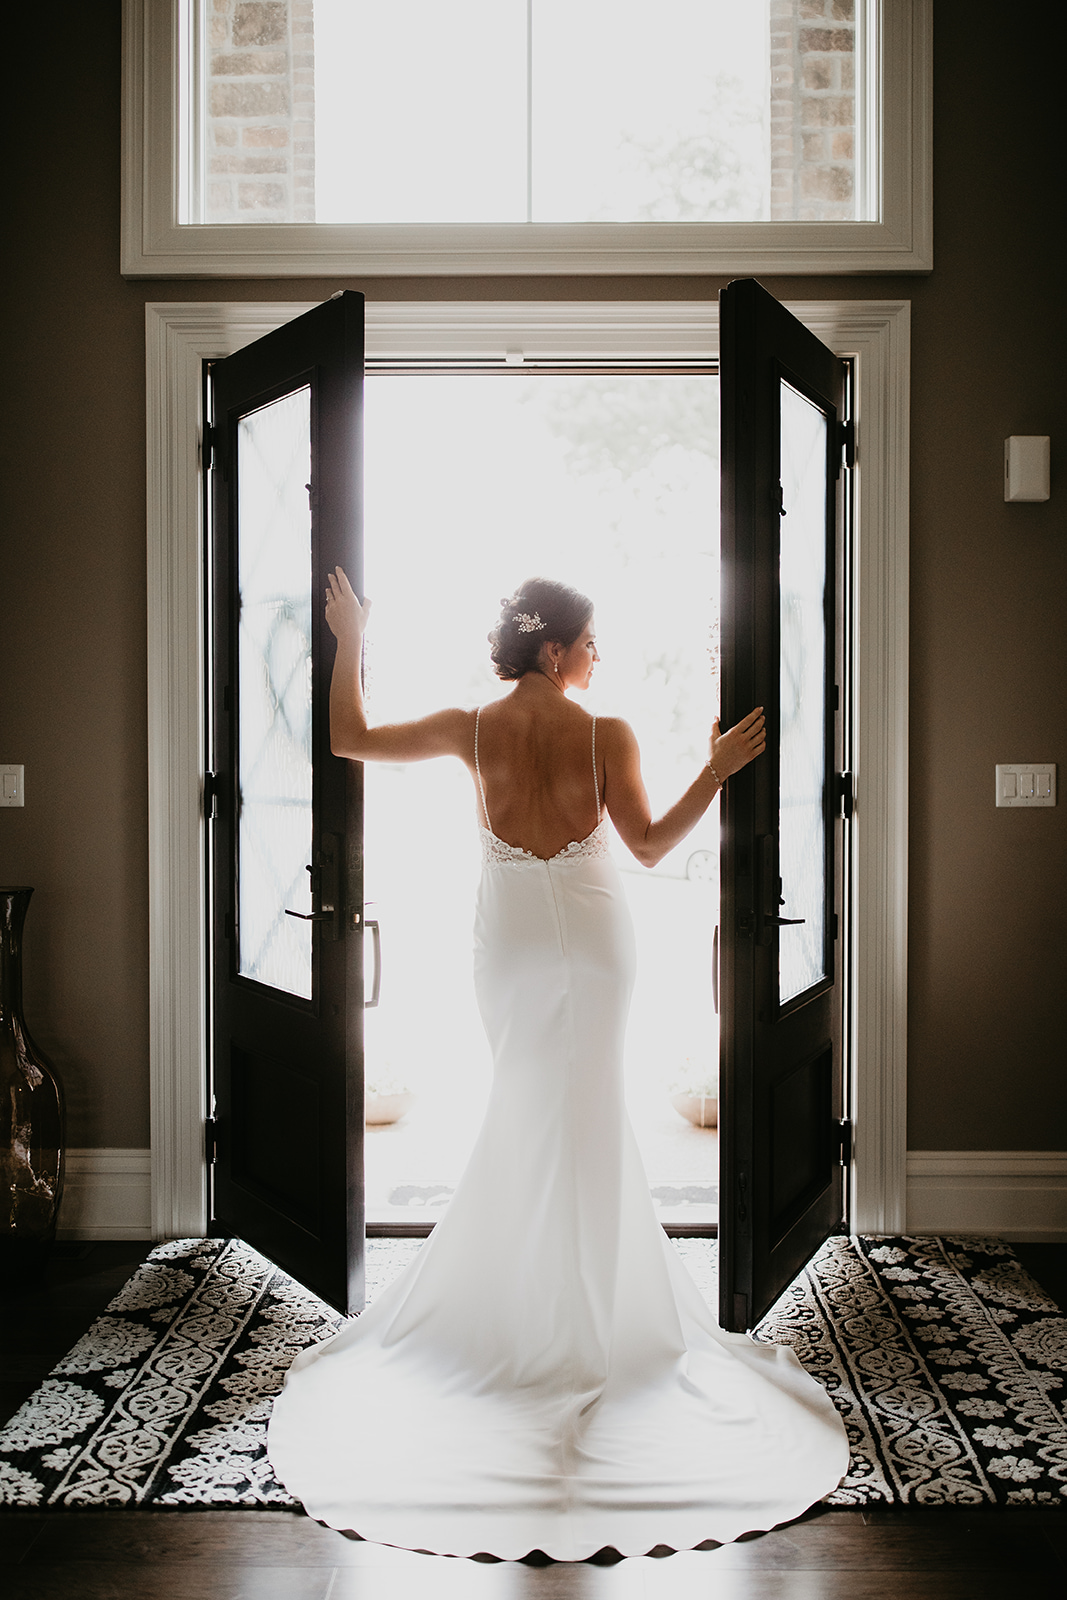 Pittsburghweddingphotography (219 of 1503).jpg